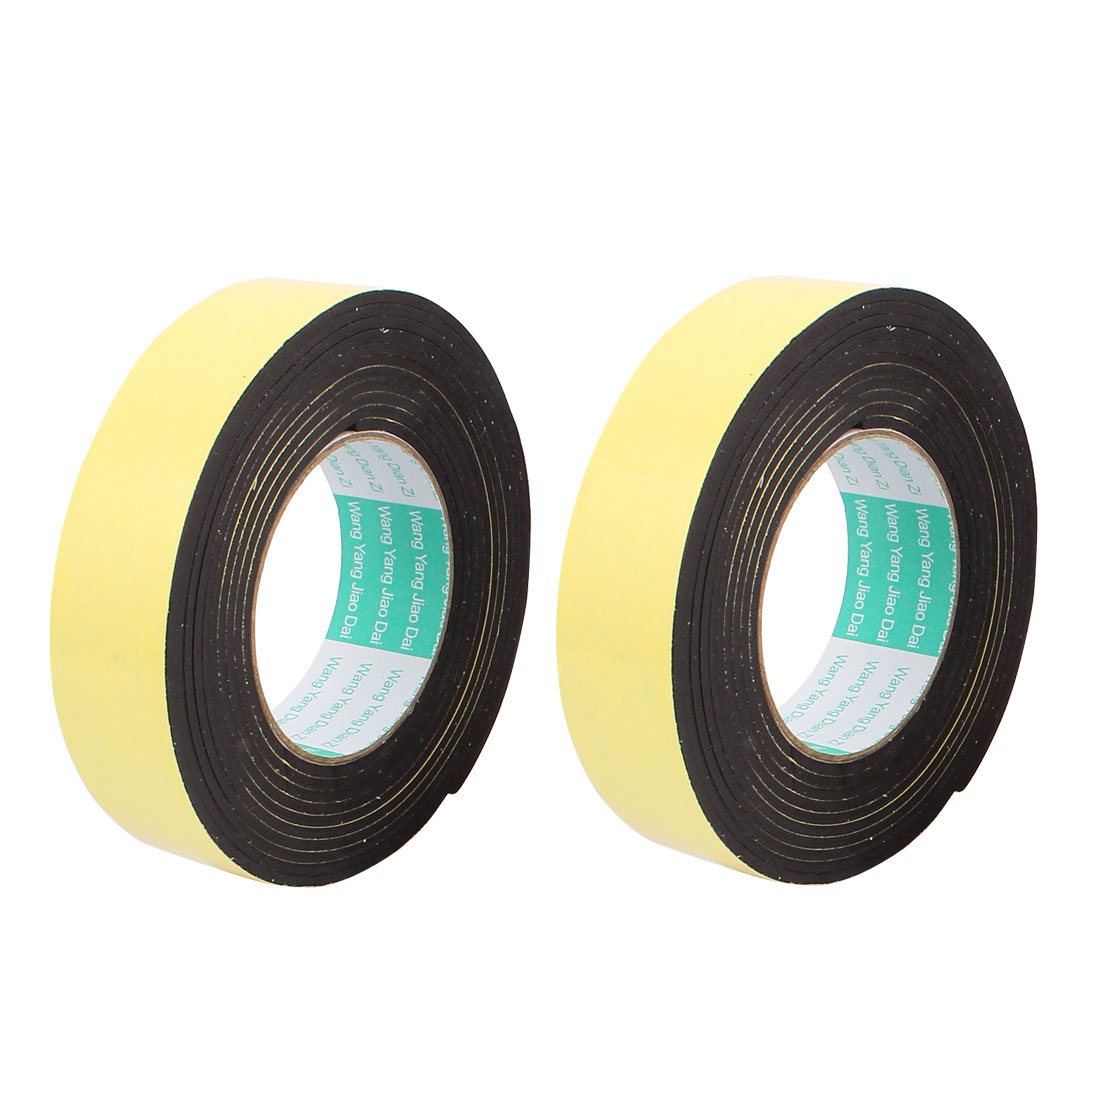 2Pcs 3.5CM Width 4M Length 3MM Thick Single Sided Sealing Shockproof Sponge Tape